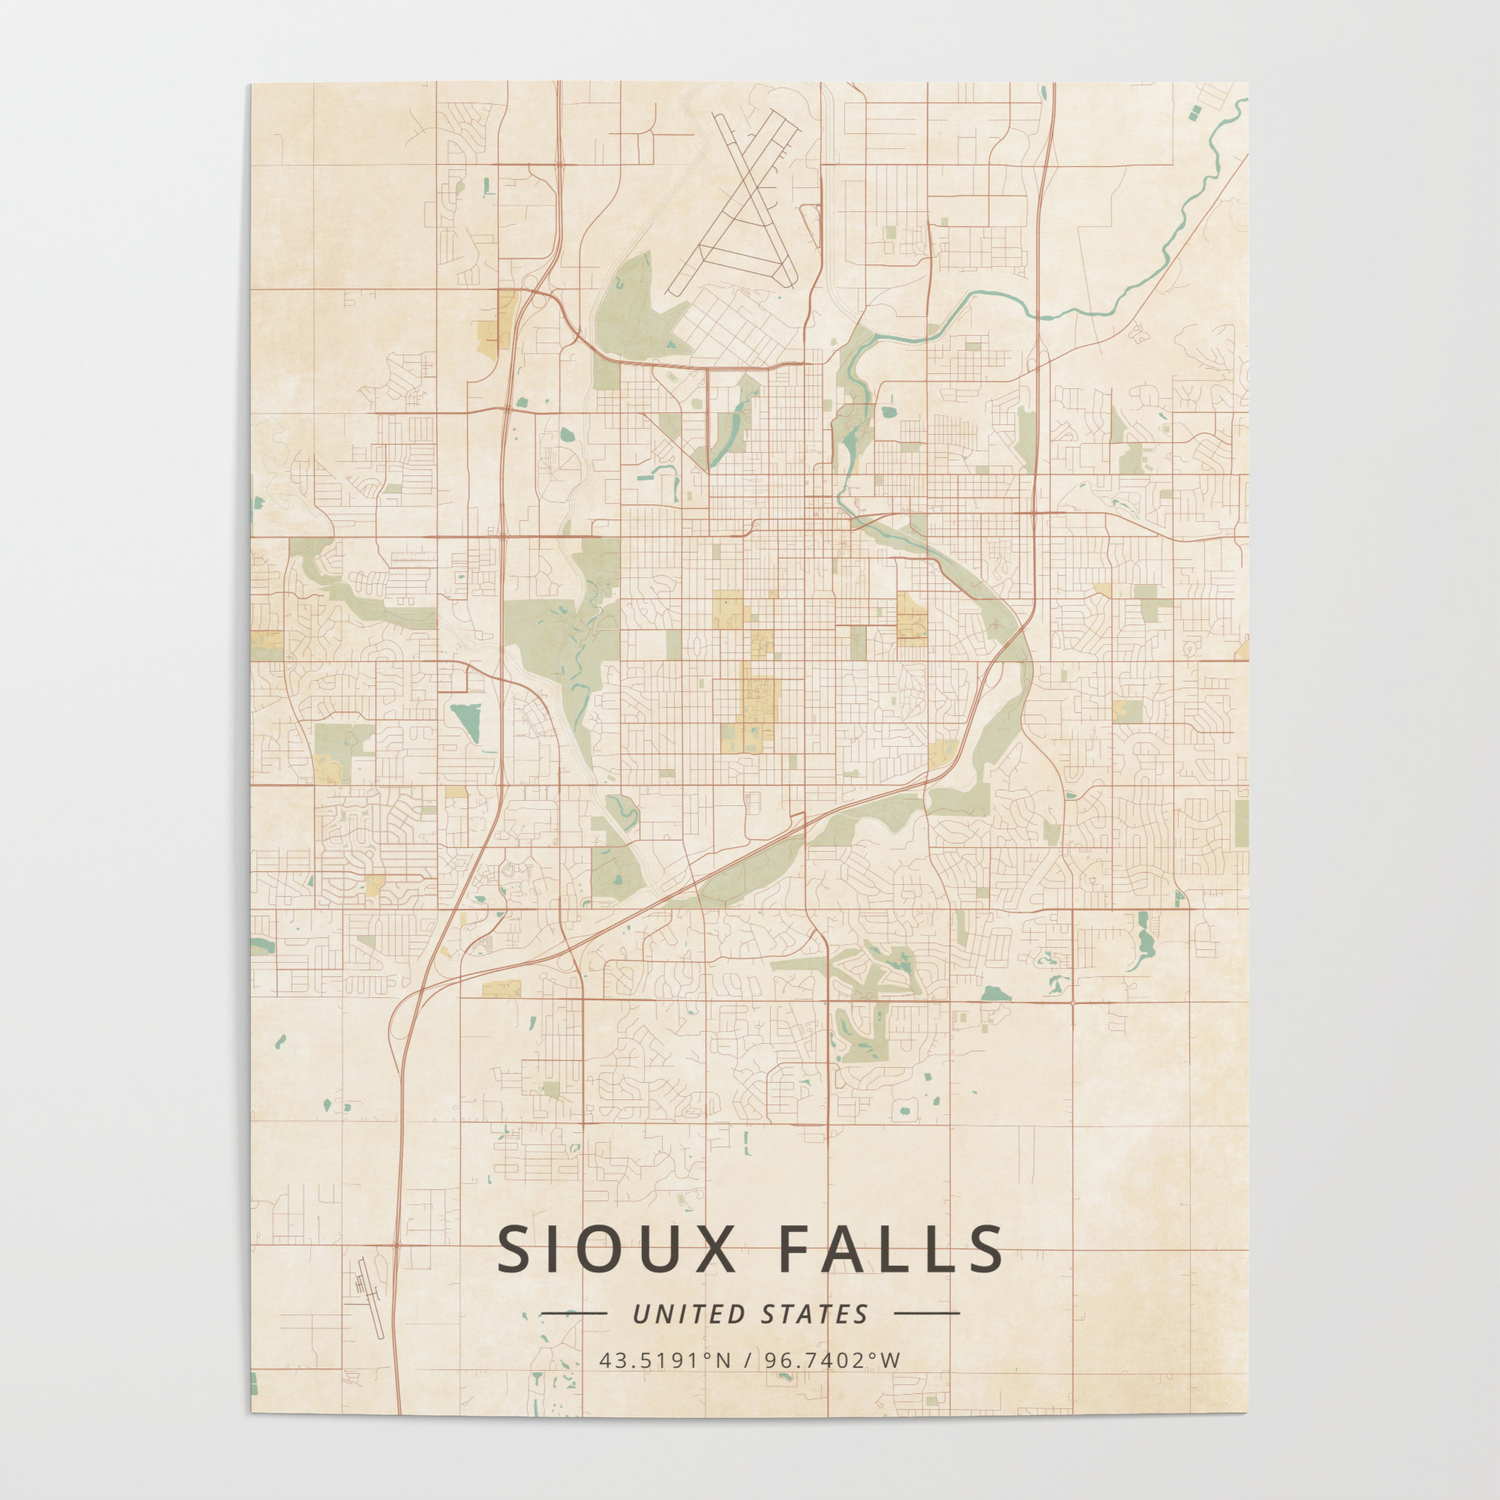 Sioux Falls, United States - Vintage Map Poster by designermapart